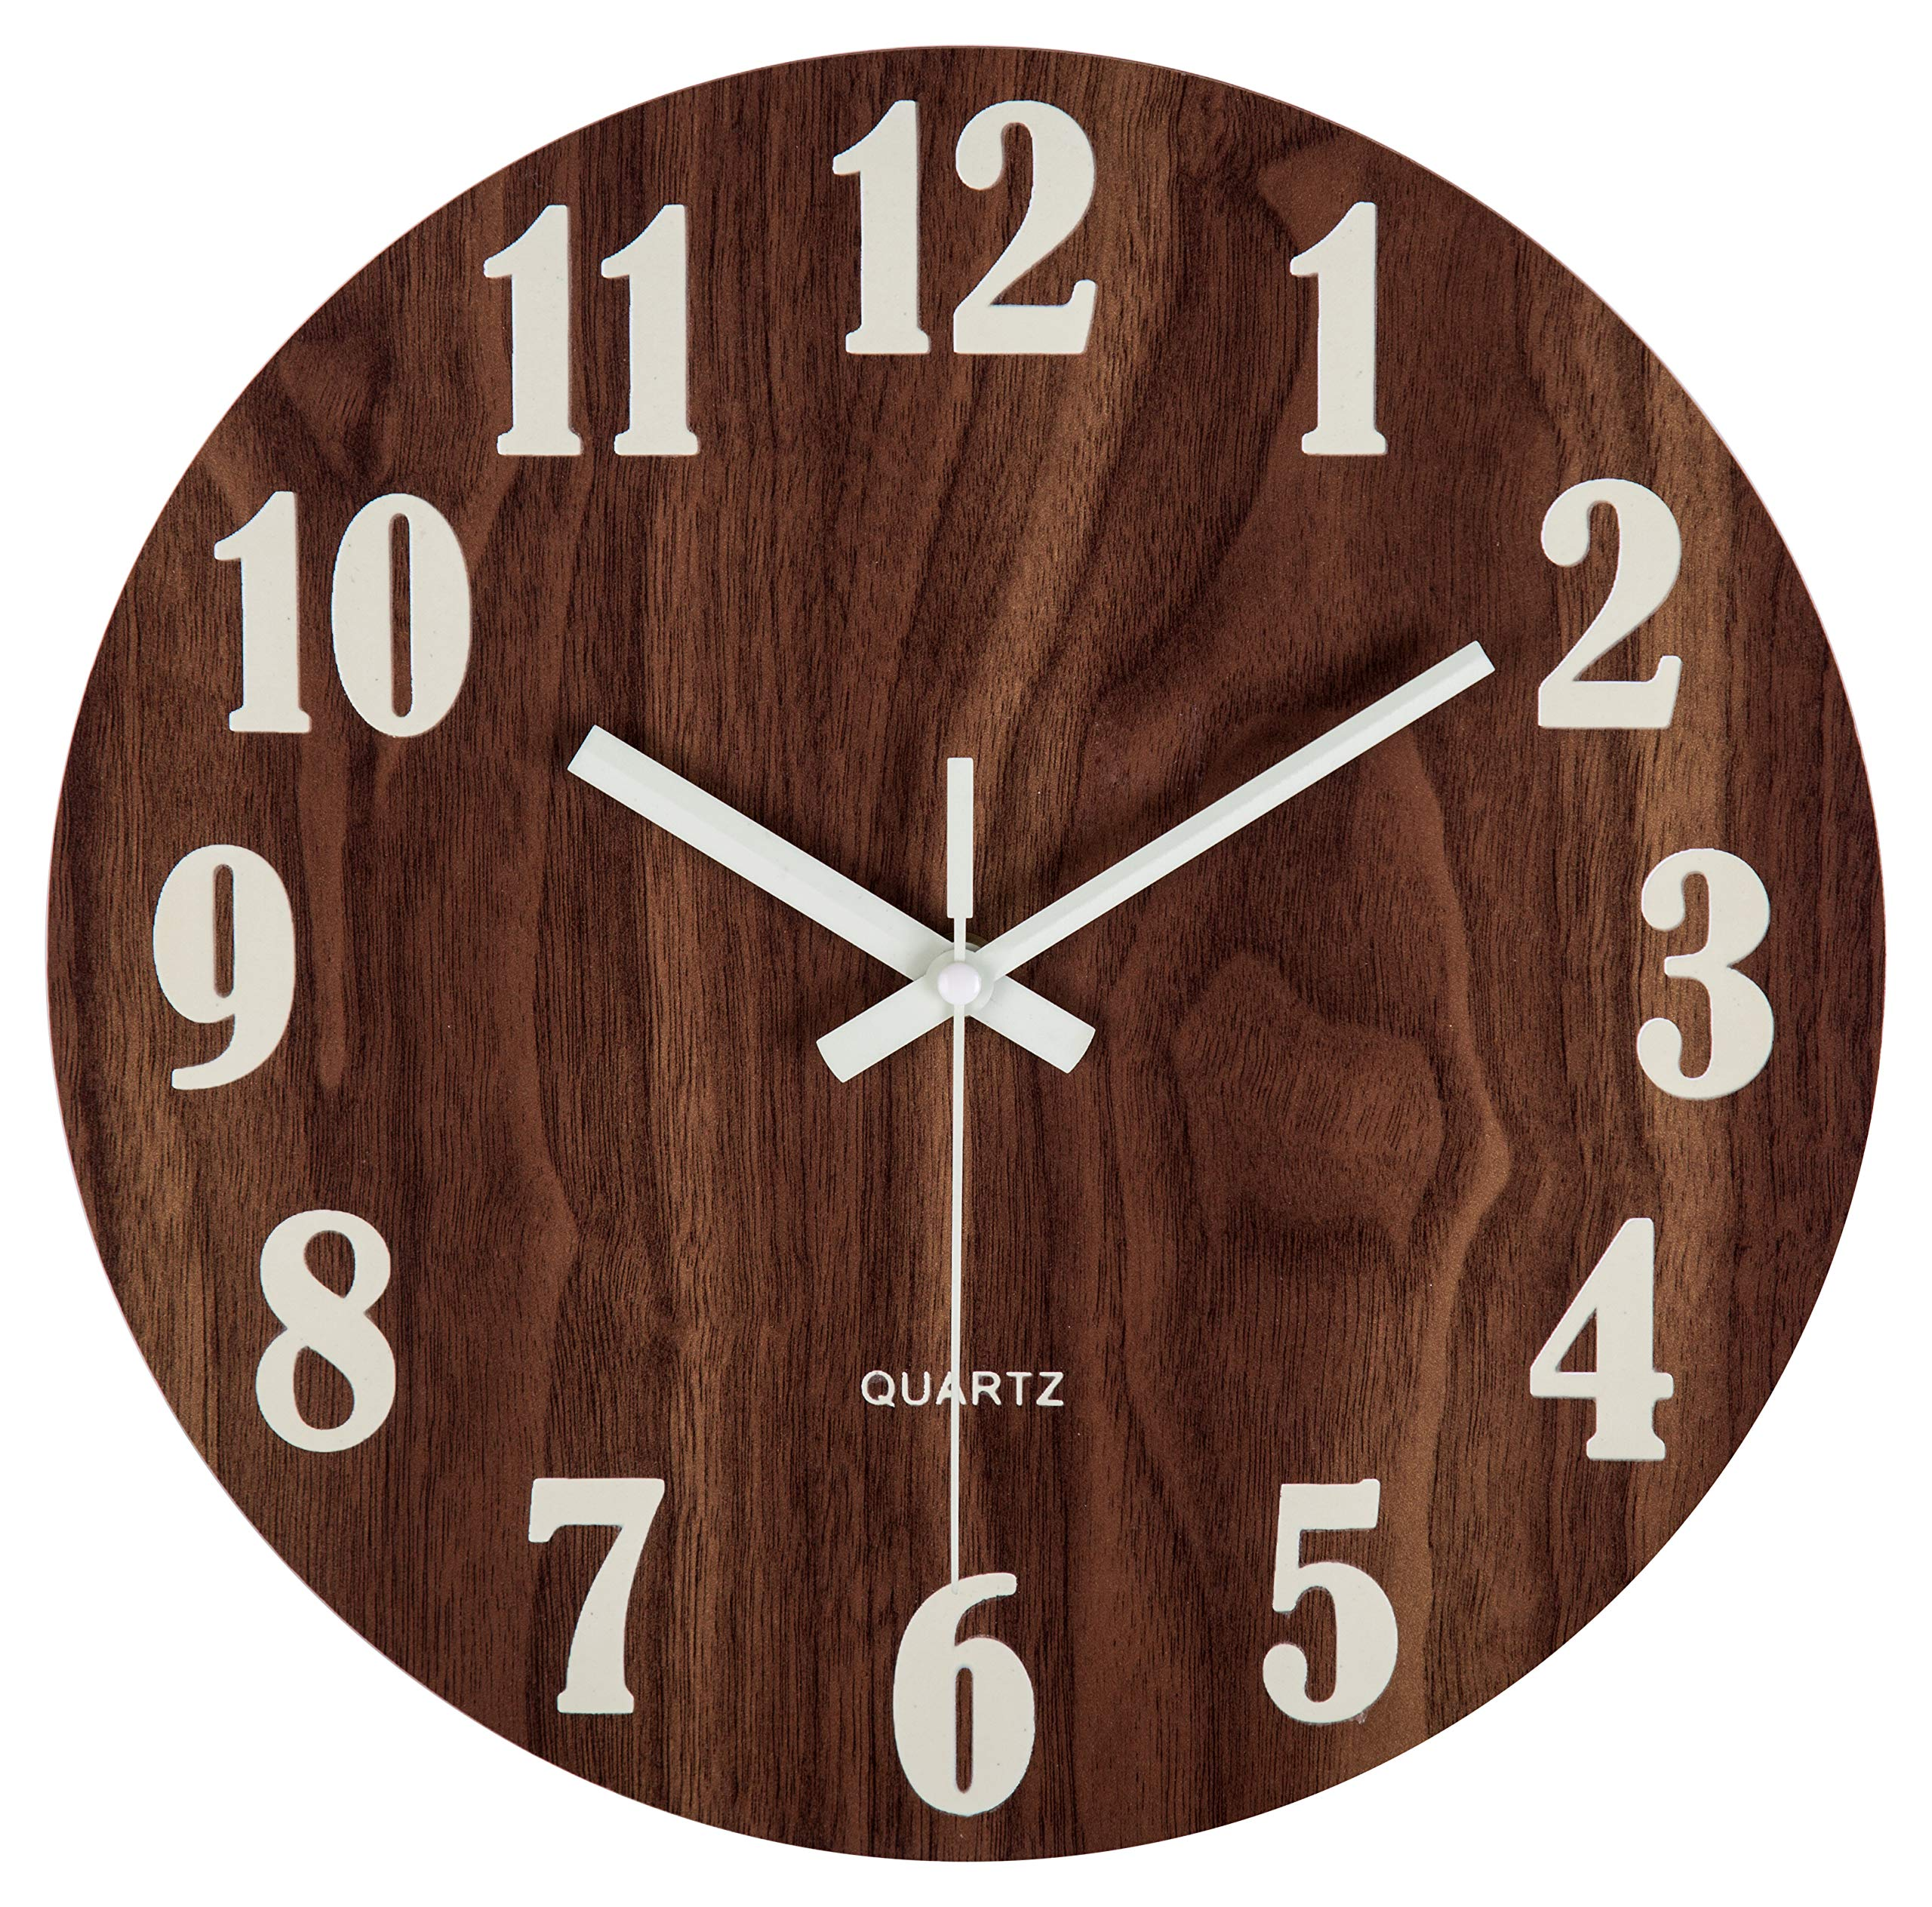 jomparis 12'' Night Light Function Wooden Wall Clock Vintage Rustic Country Tuscan Style for Kitchen Office Home Silent & Non-Ticking Large Number Battery Operated Indoor Clocks